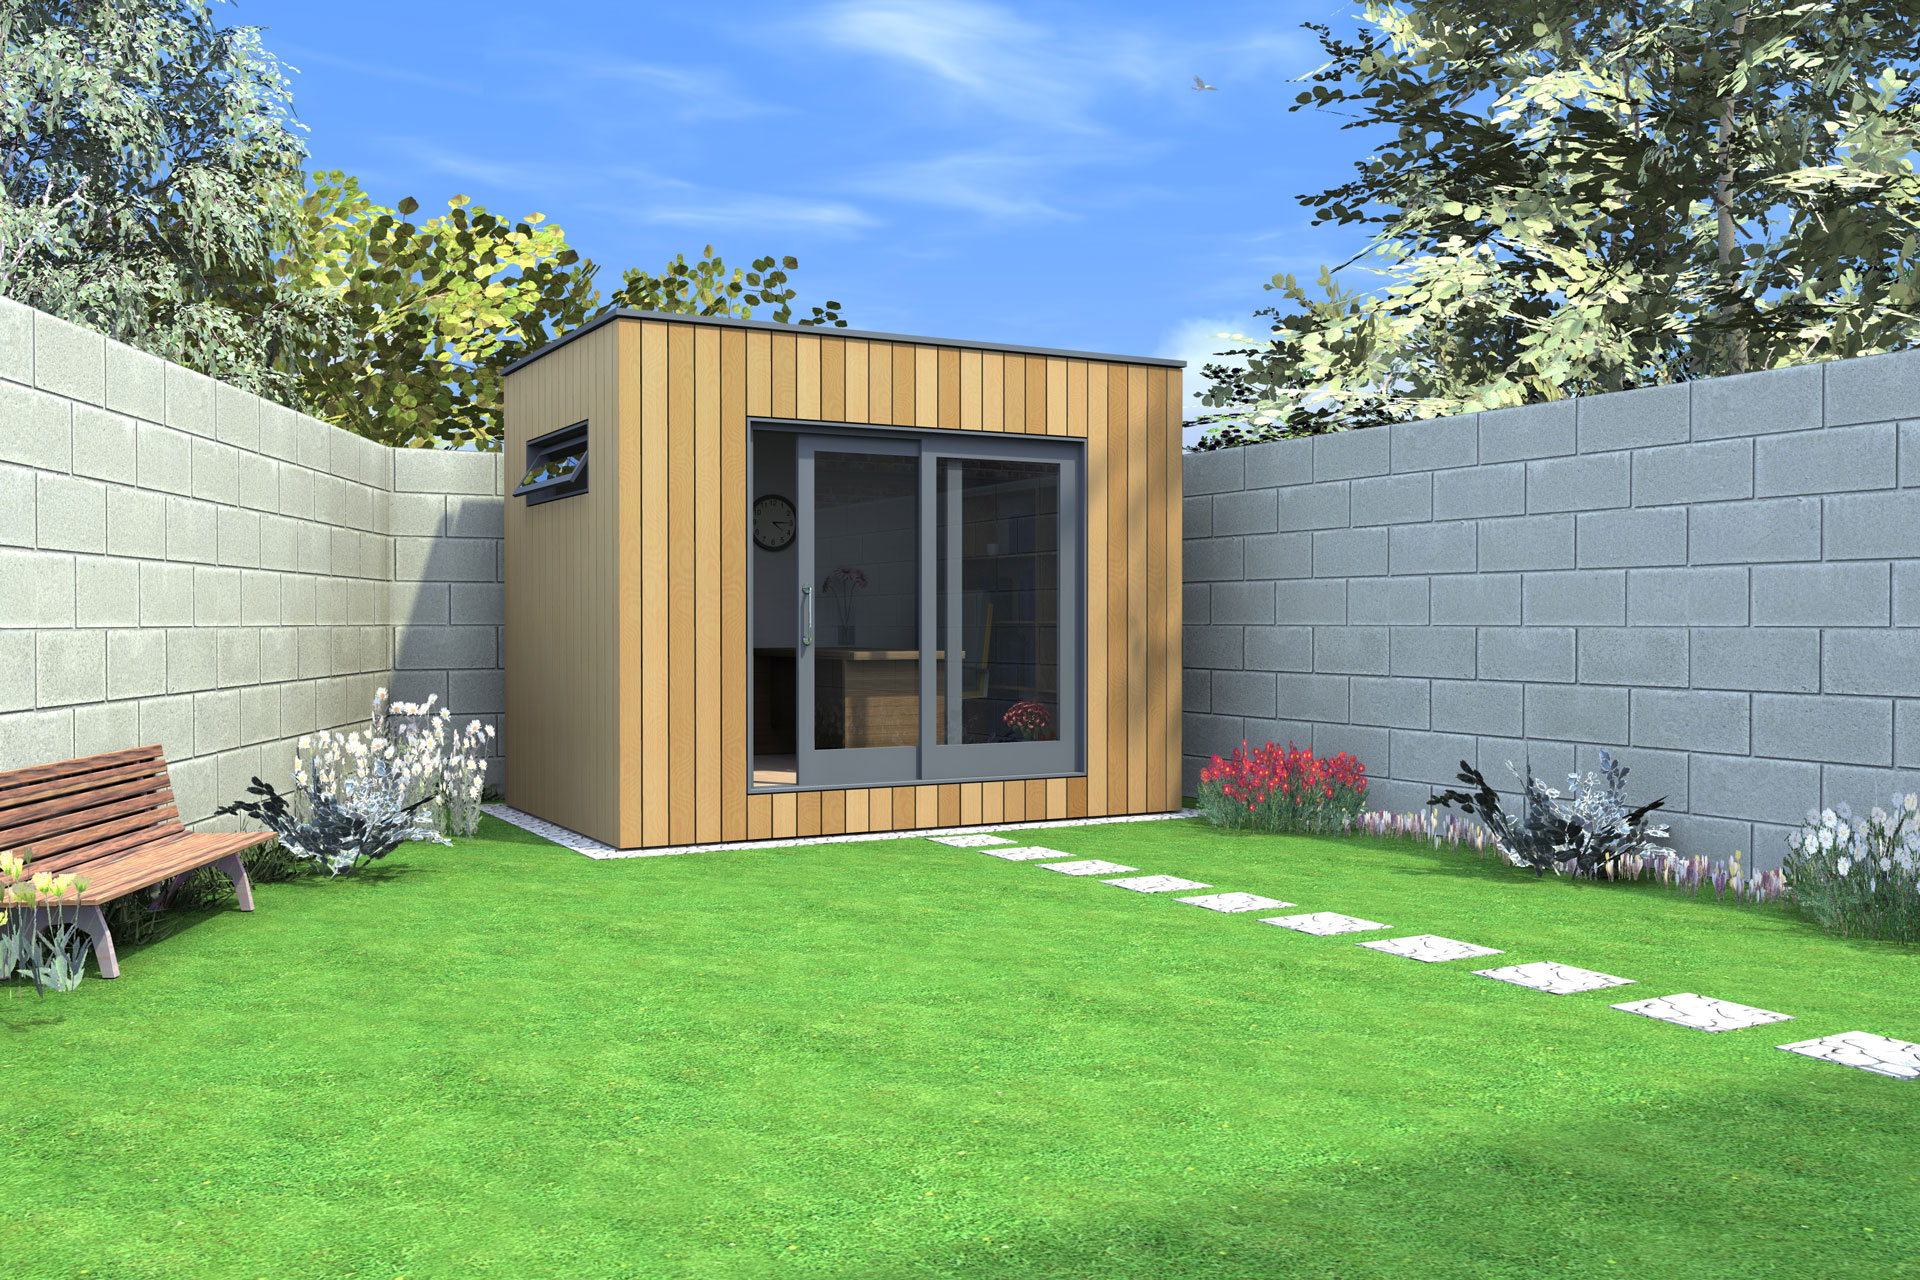 Carport Pavilion Pergola additionally Natural Garden With A Covered Sitting Area 6272 as well Wood Garage Shelves Exquisite Bedroom Ideas And Wood Garage Shelves Gallery as well Show 4239 likewise Classic Stable. on garden shed wood